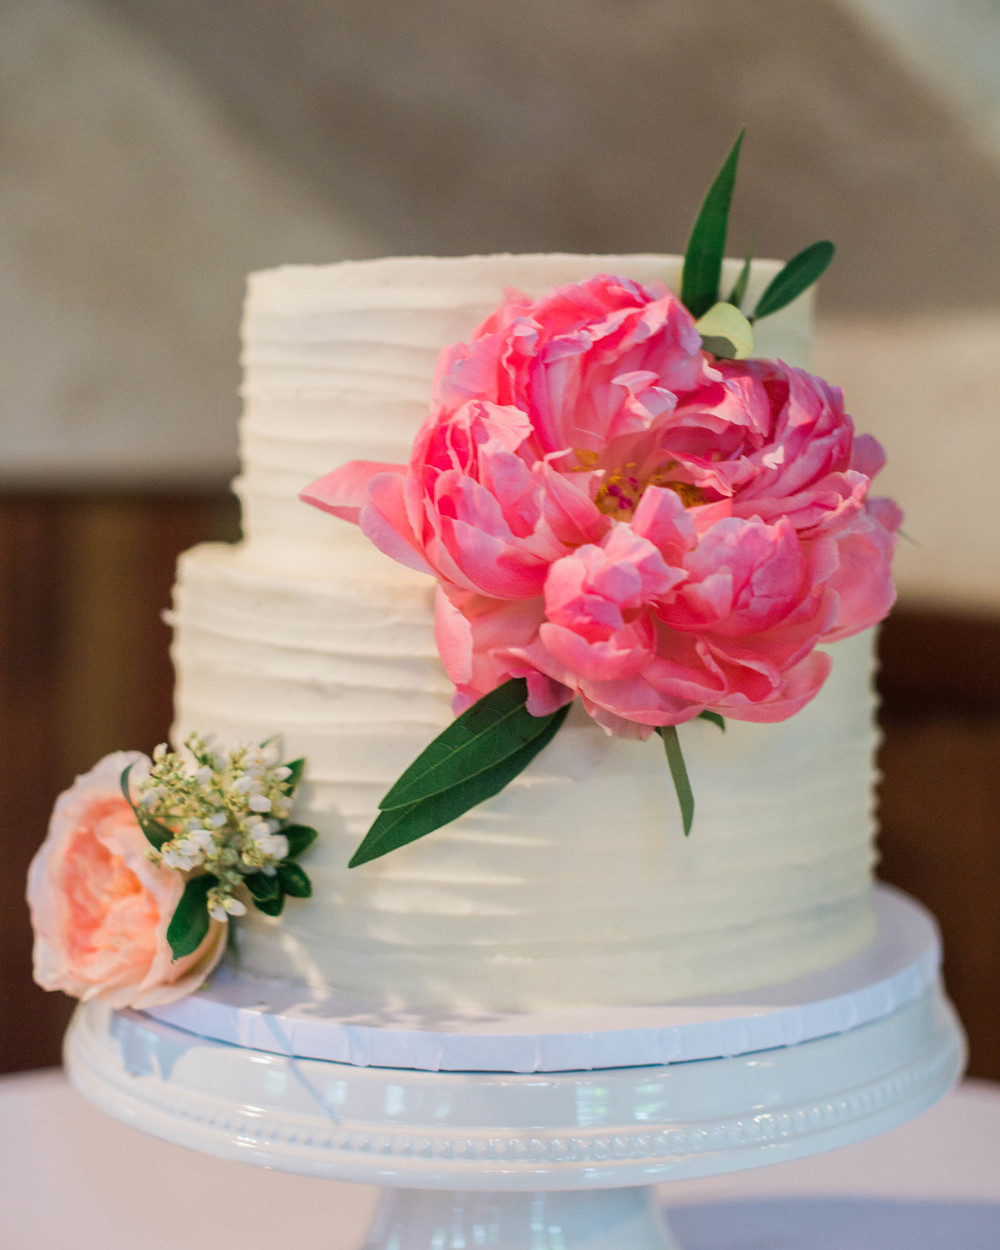 buttercream with fresh flowers3.jpg